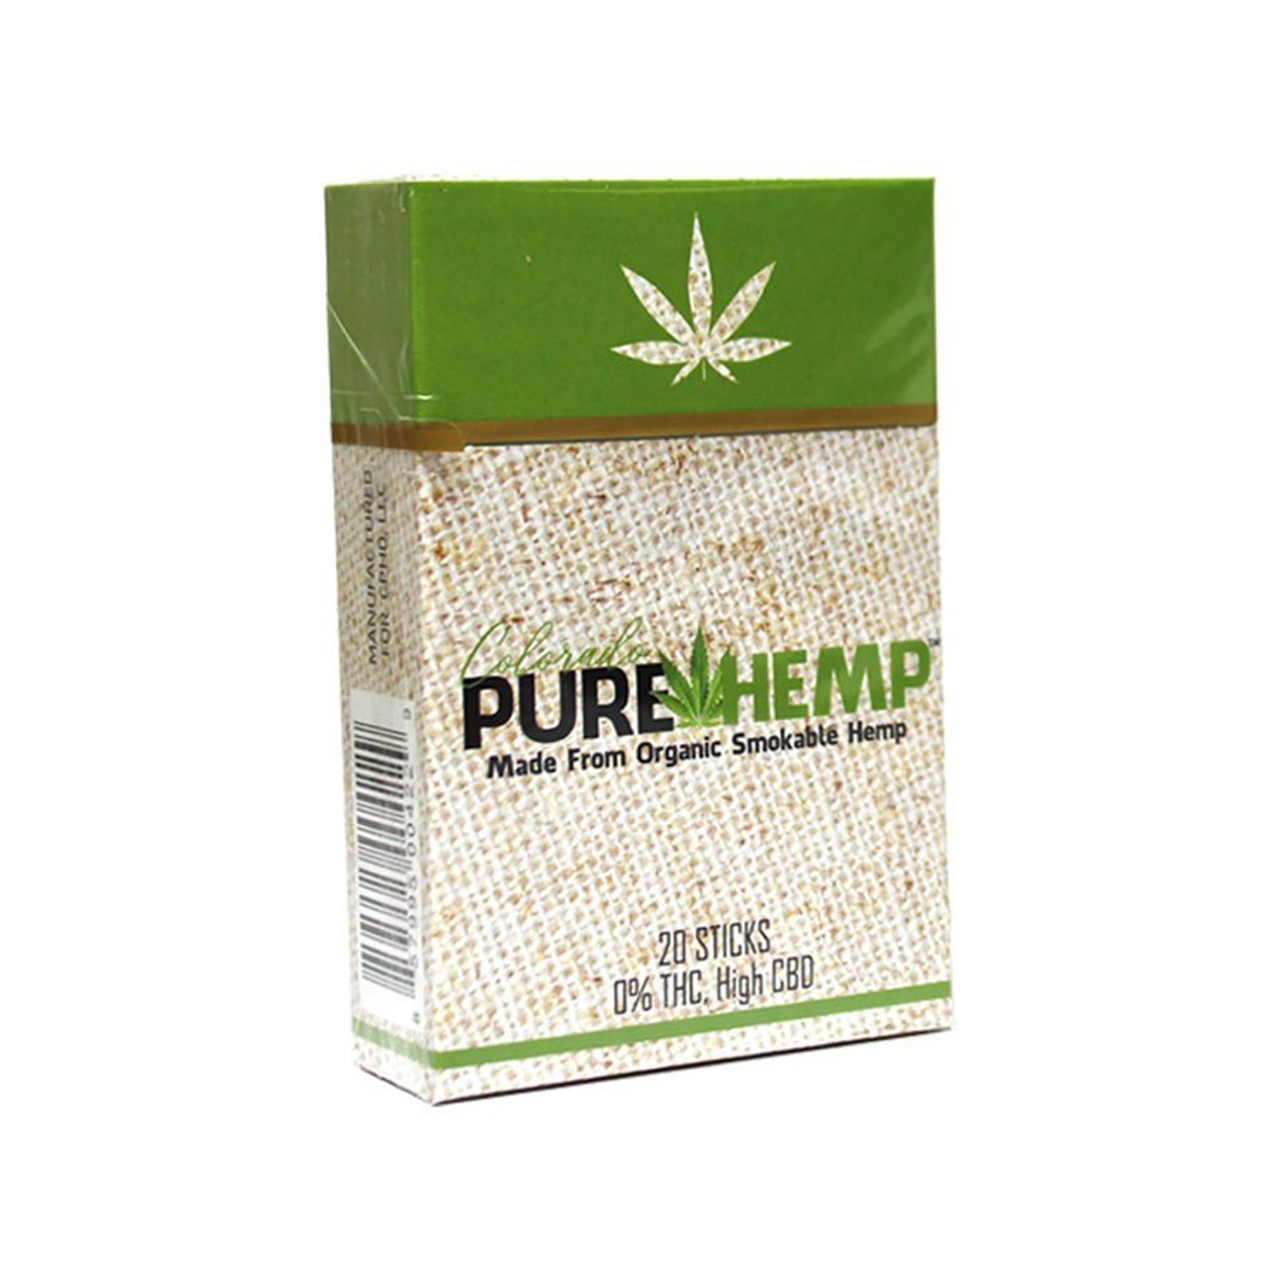 Colorado Pure Hemp is an unique product in the market right now. With less than 0.3% THC and a unique flavor profile made from smokable Hemp, it's the next big thing.We use Organic Smokable Hemp flowers that are full of CBD and a variety of terpenes for maximum results. Although containing other cannabinoids, there is less than 0.3% THC in every product.